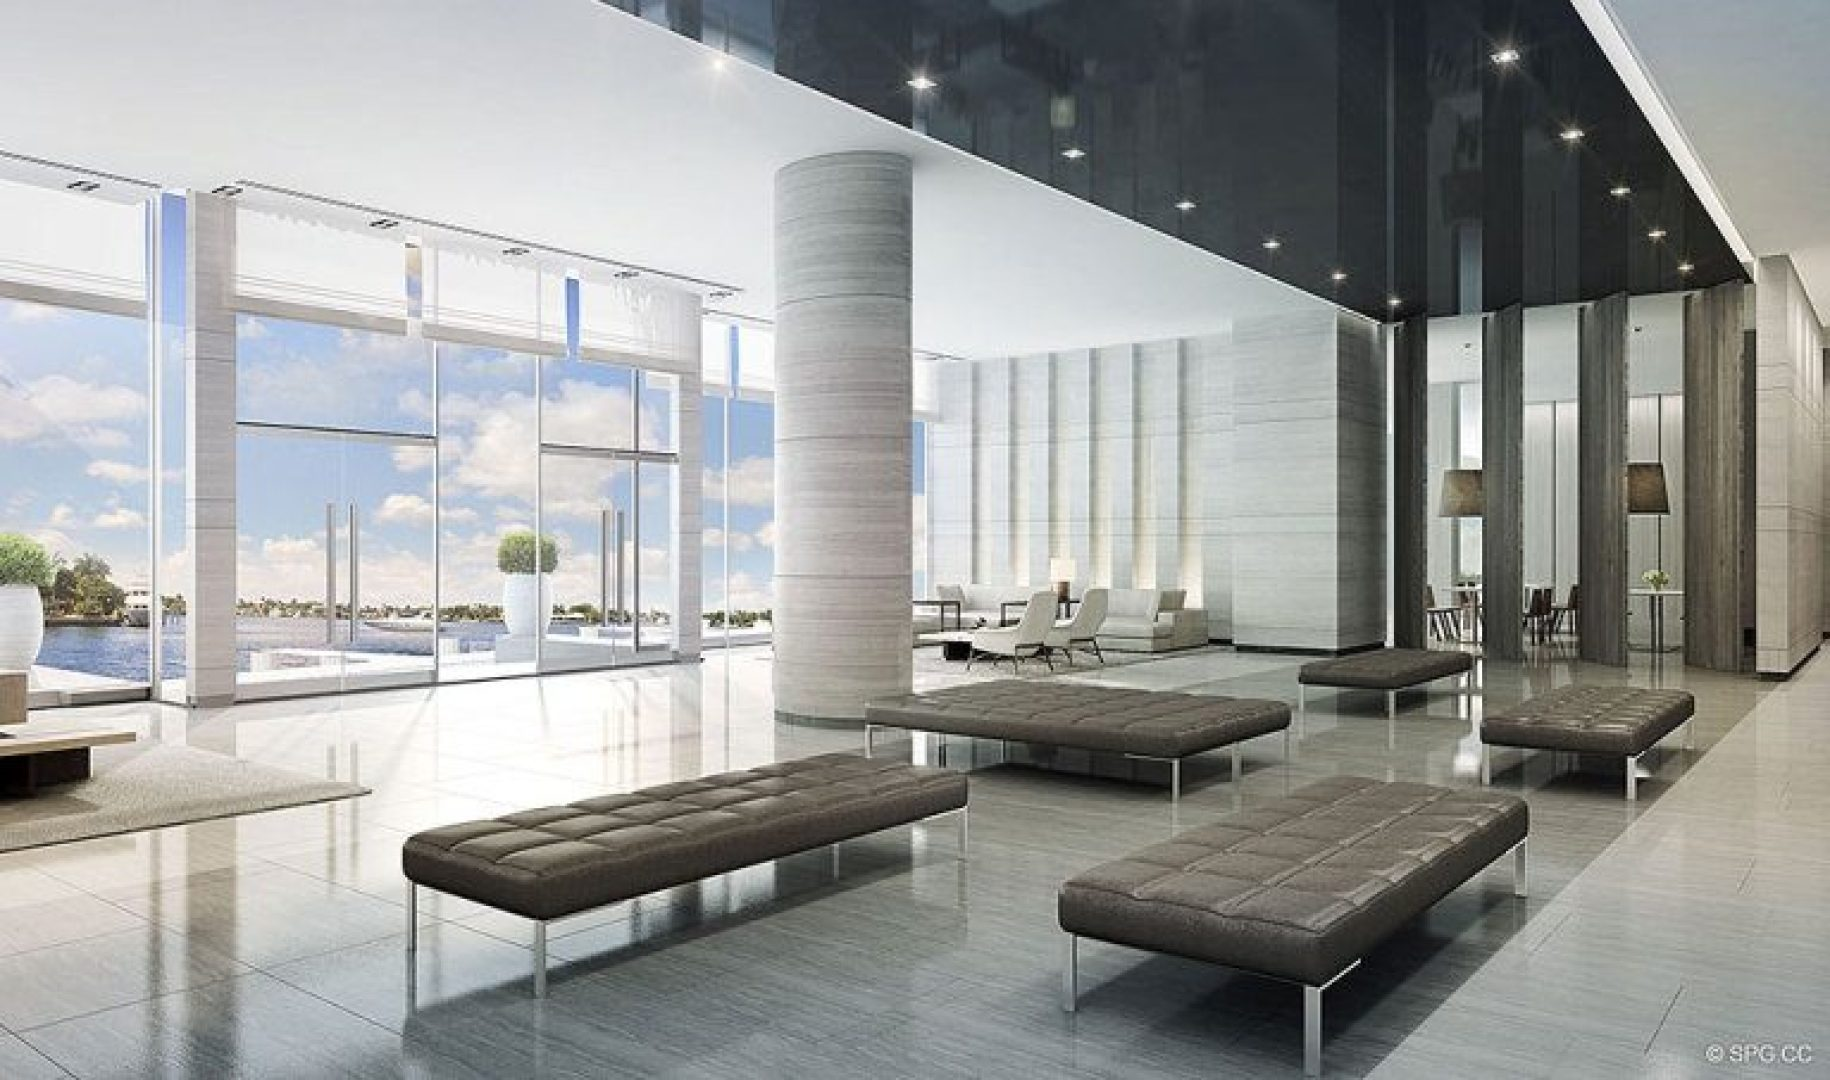 Lobby Concept for Riva, Luxury Waterfront Condos in Fort Lauderdale, Florida 33304.